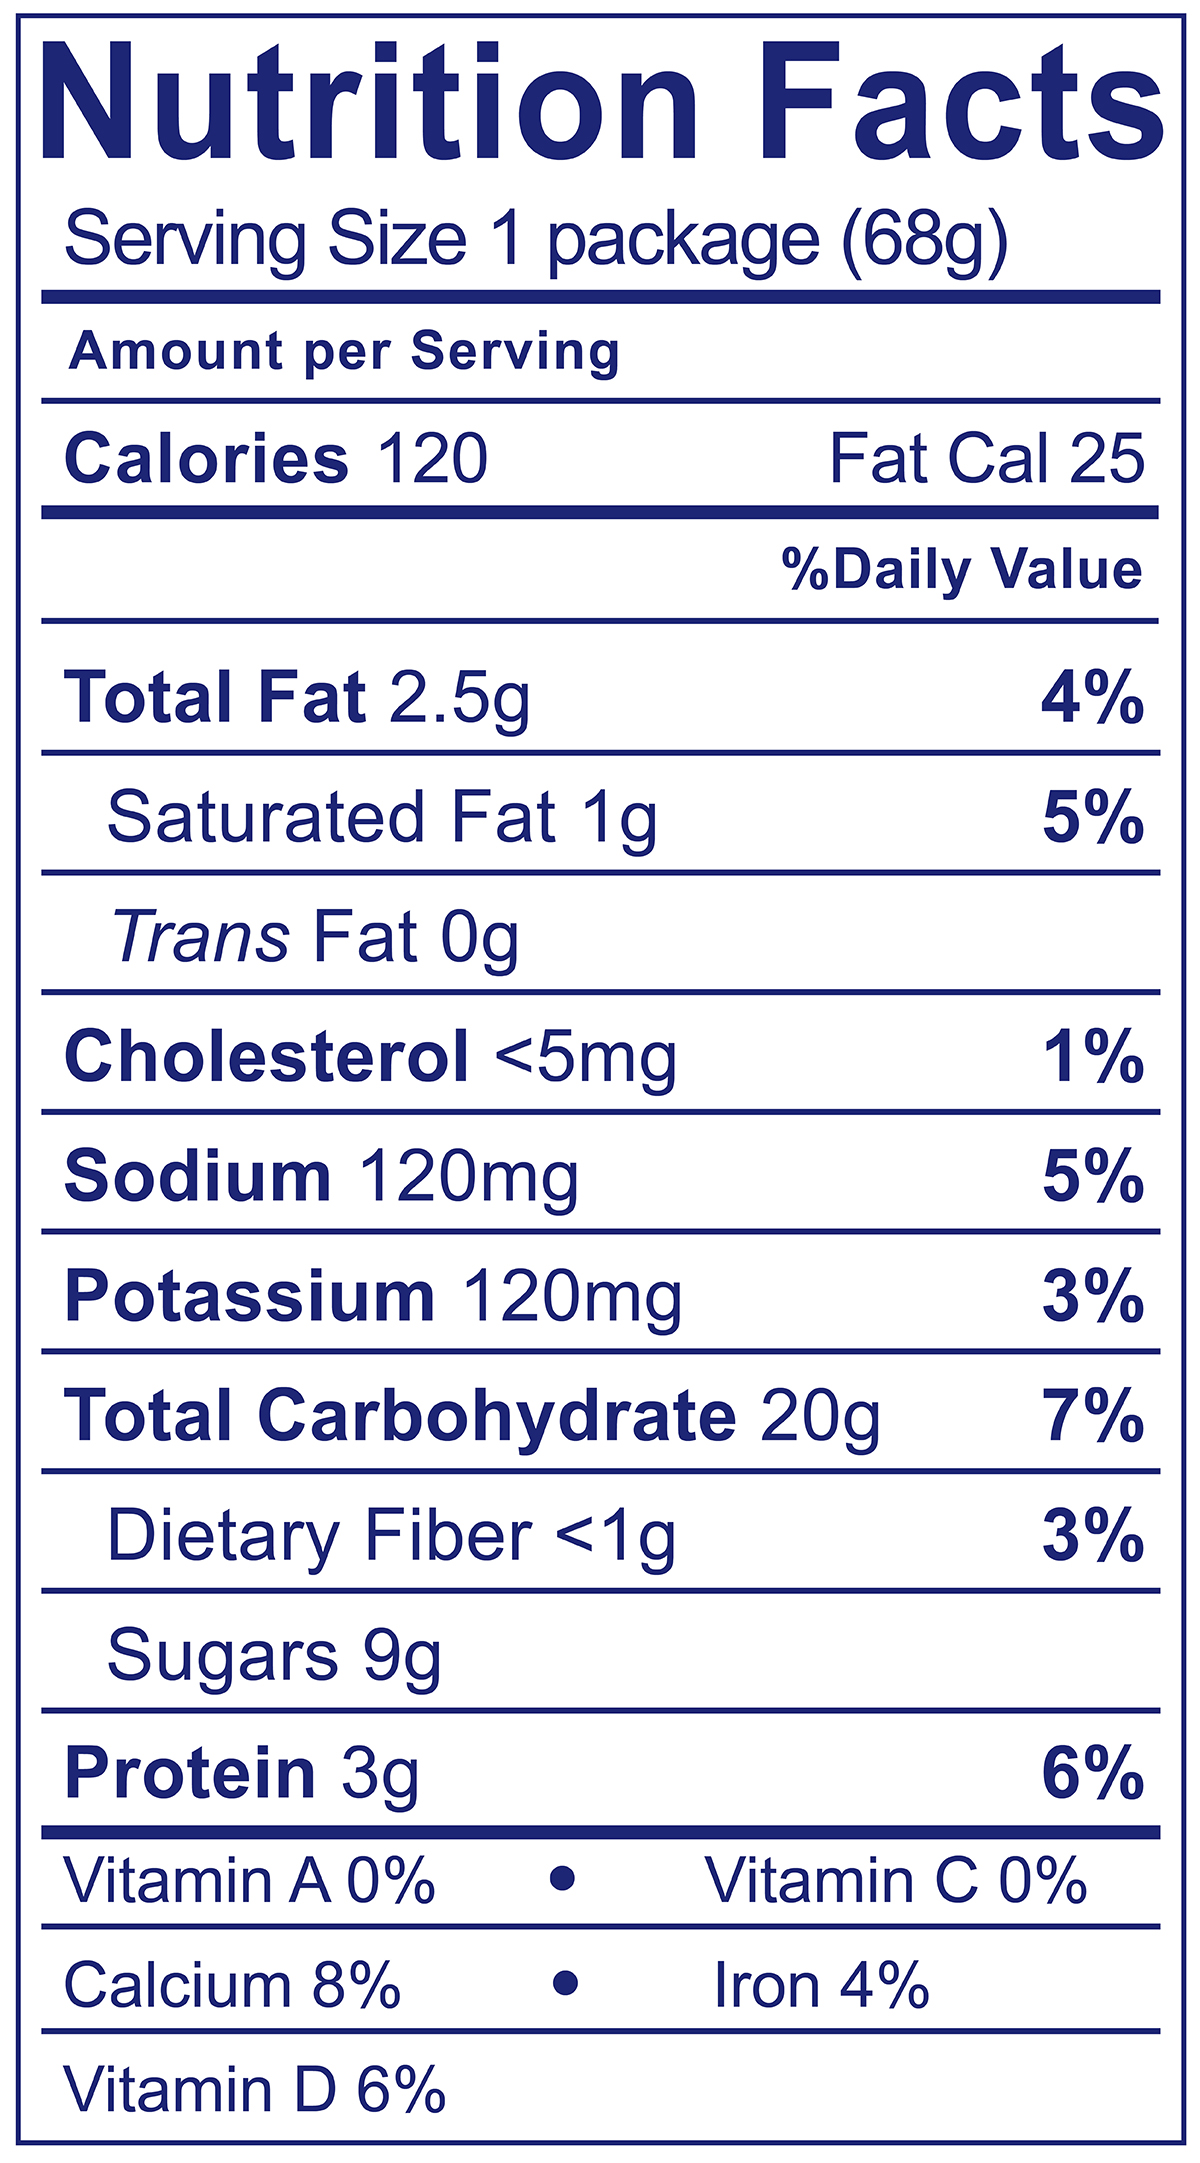 Strawberry & Graham Crackers Snack Pack - Nutrition Facts